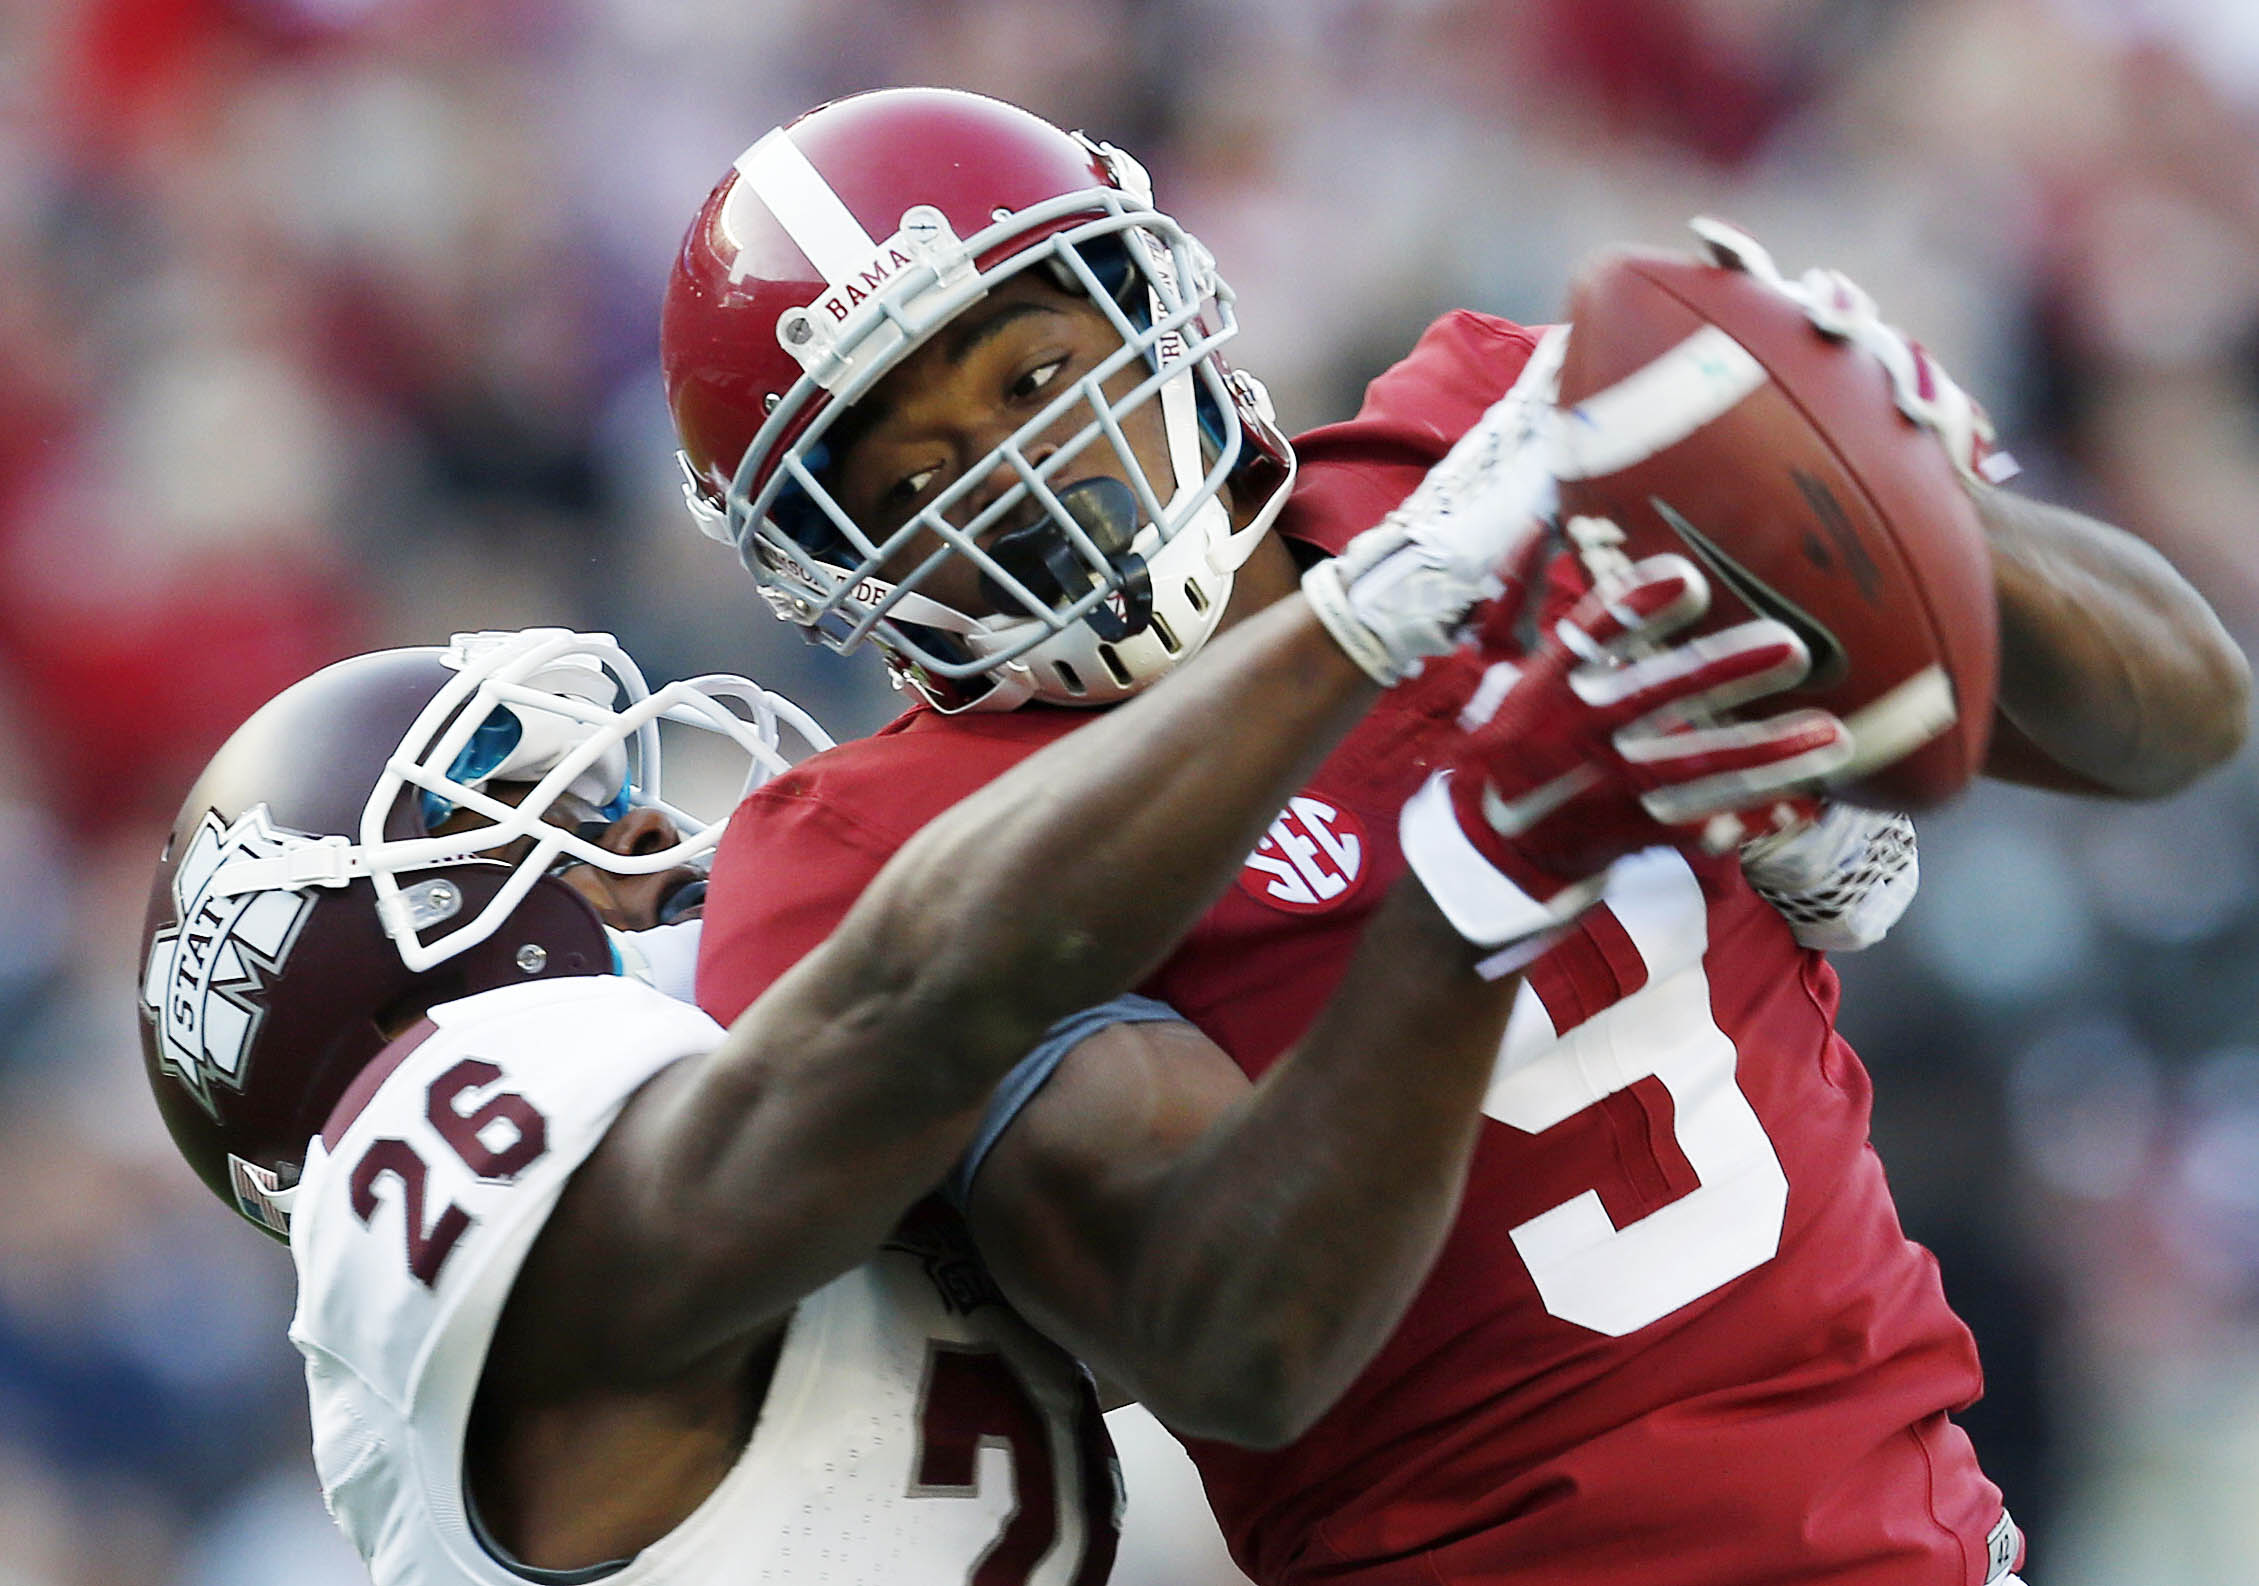 FILE - In this Nov. 15, 2014, file photo, Alabama wide receiver Amari Cooper (9) catches a 50-yard pass against Mississippi State defensive back Kendrick Market (26) in the first half of an NCAA college football game in Tuscaloosa, Ala. There will be seve